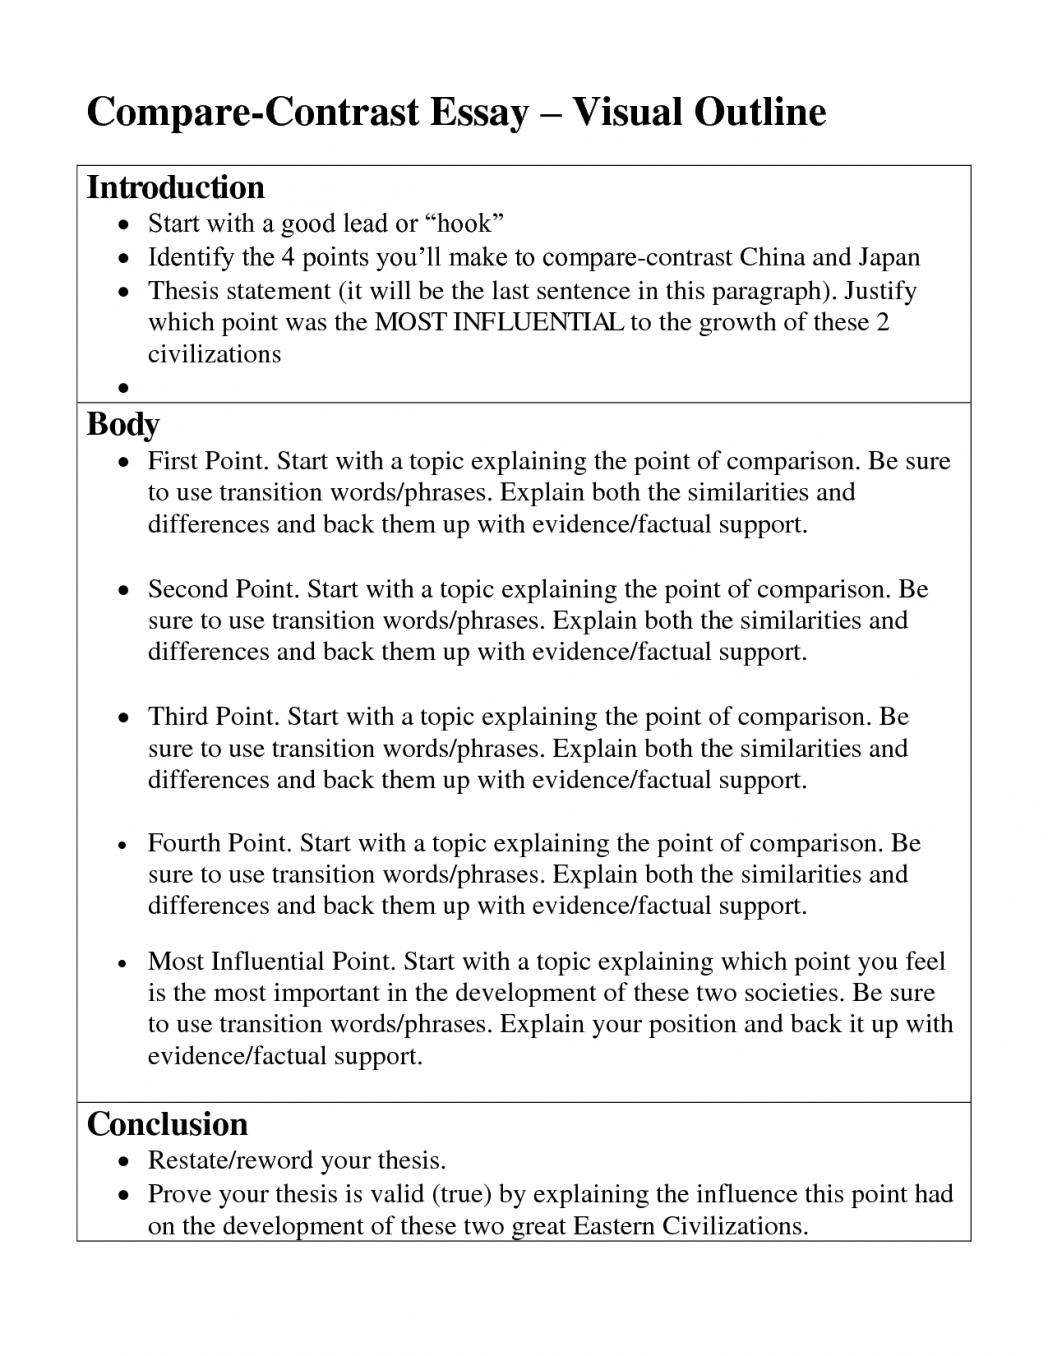 009 Compare And Contrast Essay Topics For High School Students English College Pdf Research Paper 1048x1356 Fantastic Elementary Ielts Full